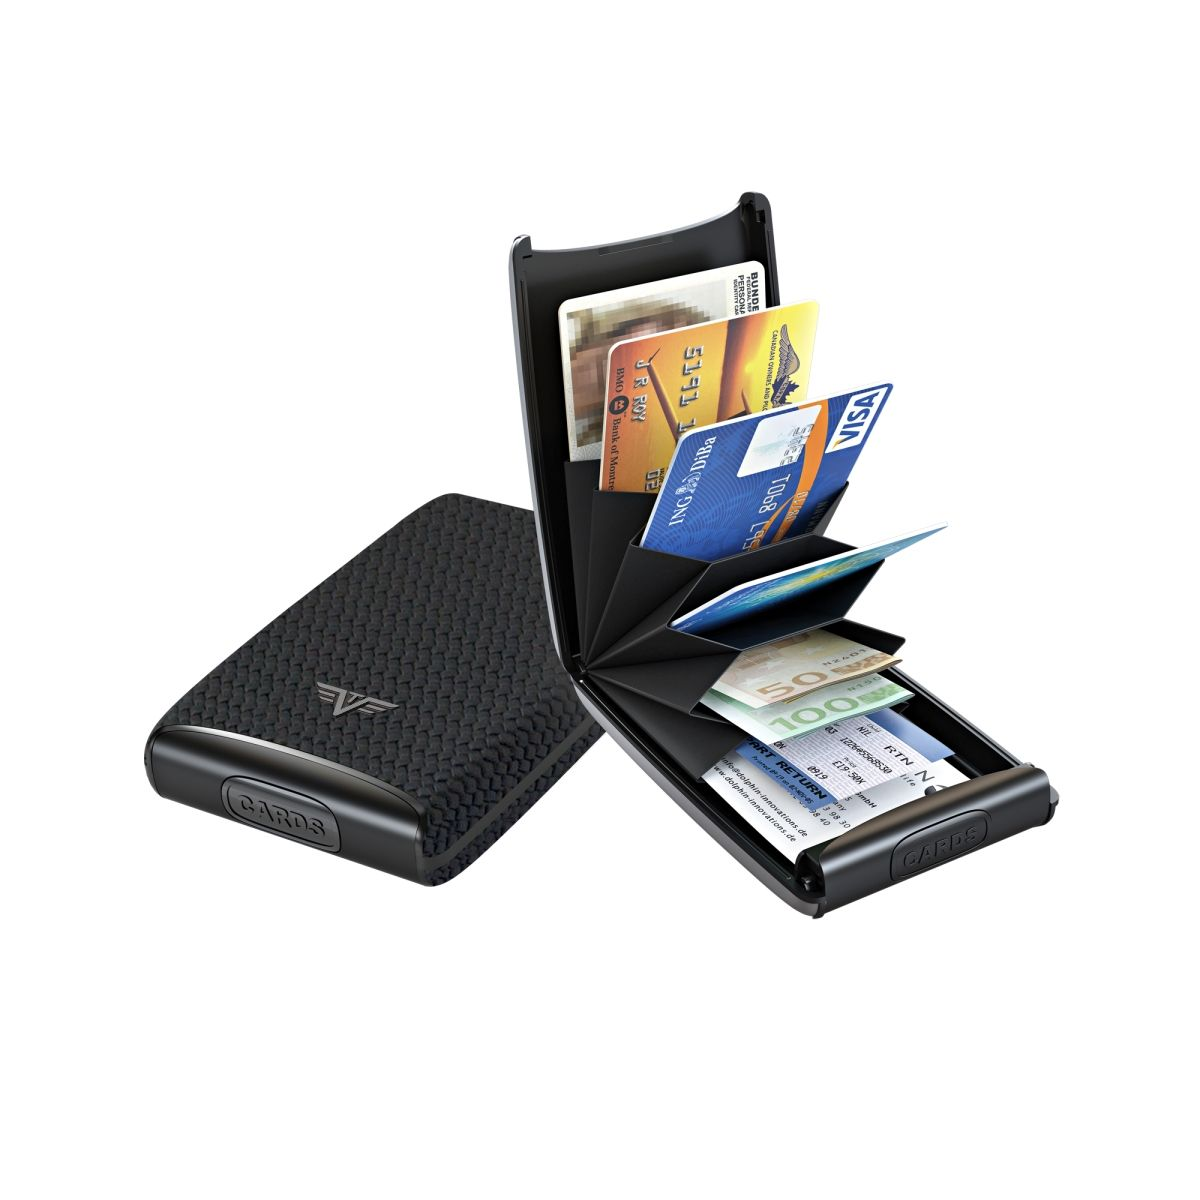 TRU VIRTU Aluminum Card Case Fun Leather Line - Diagonal Carbon Black